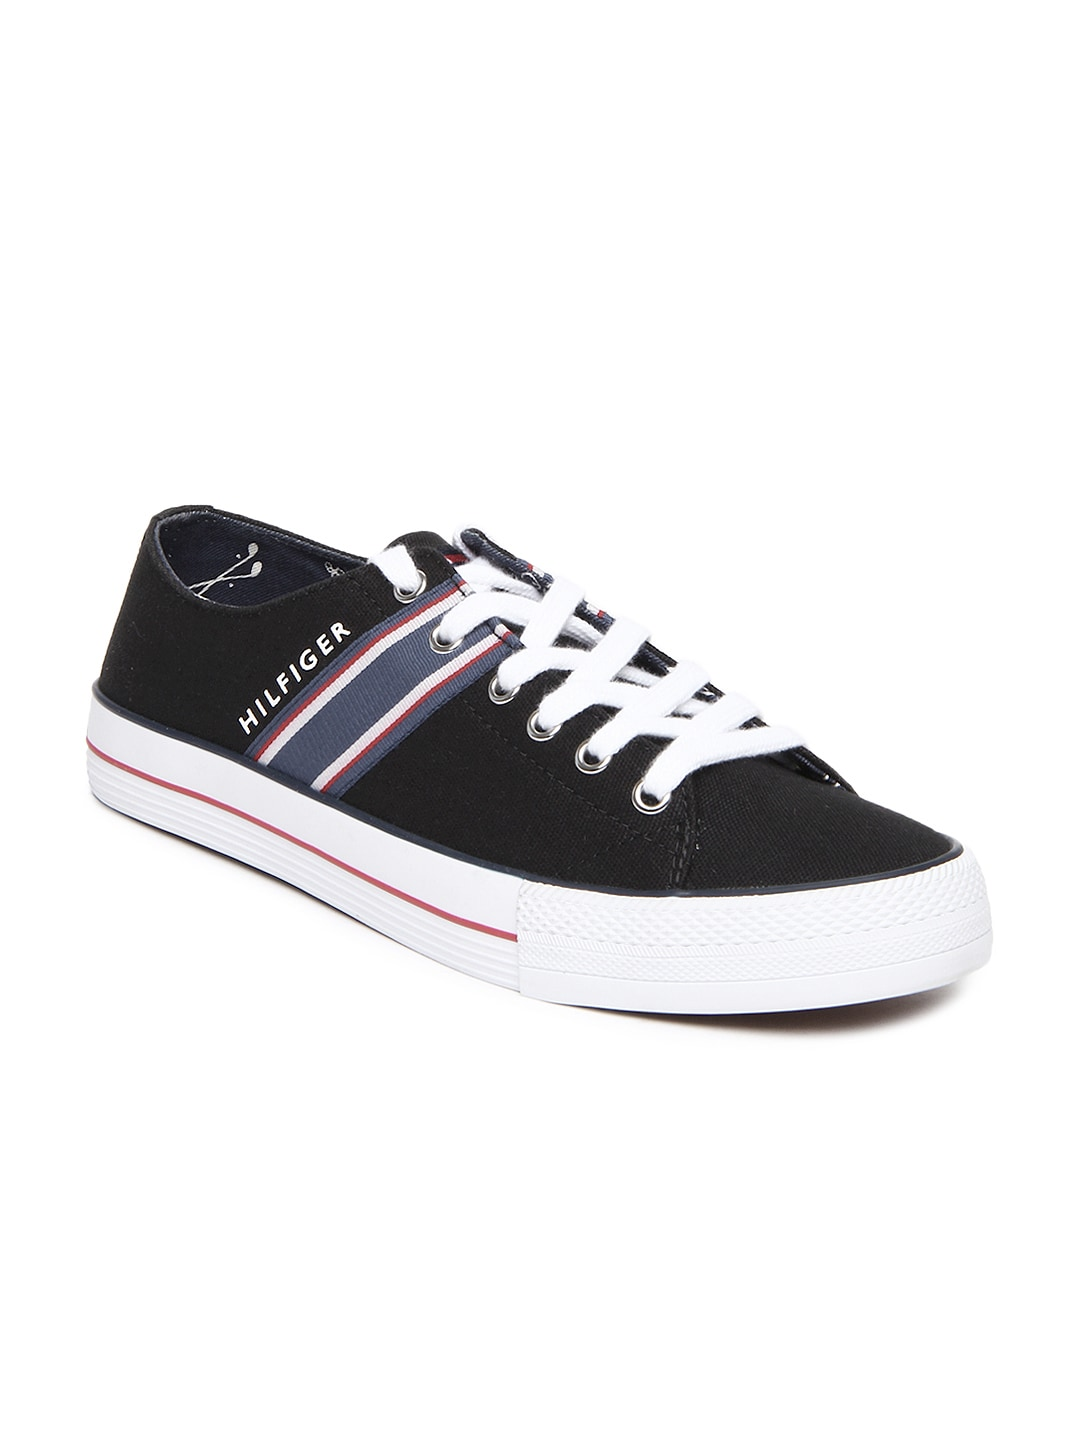 ecbfdaba0c2dc Tommy hilfiger a2btf005 Men Black Casual Shoes - Best Price in India ...